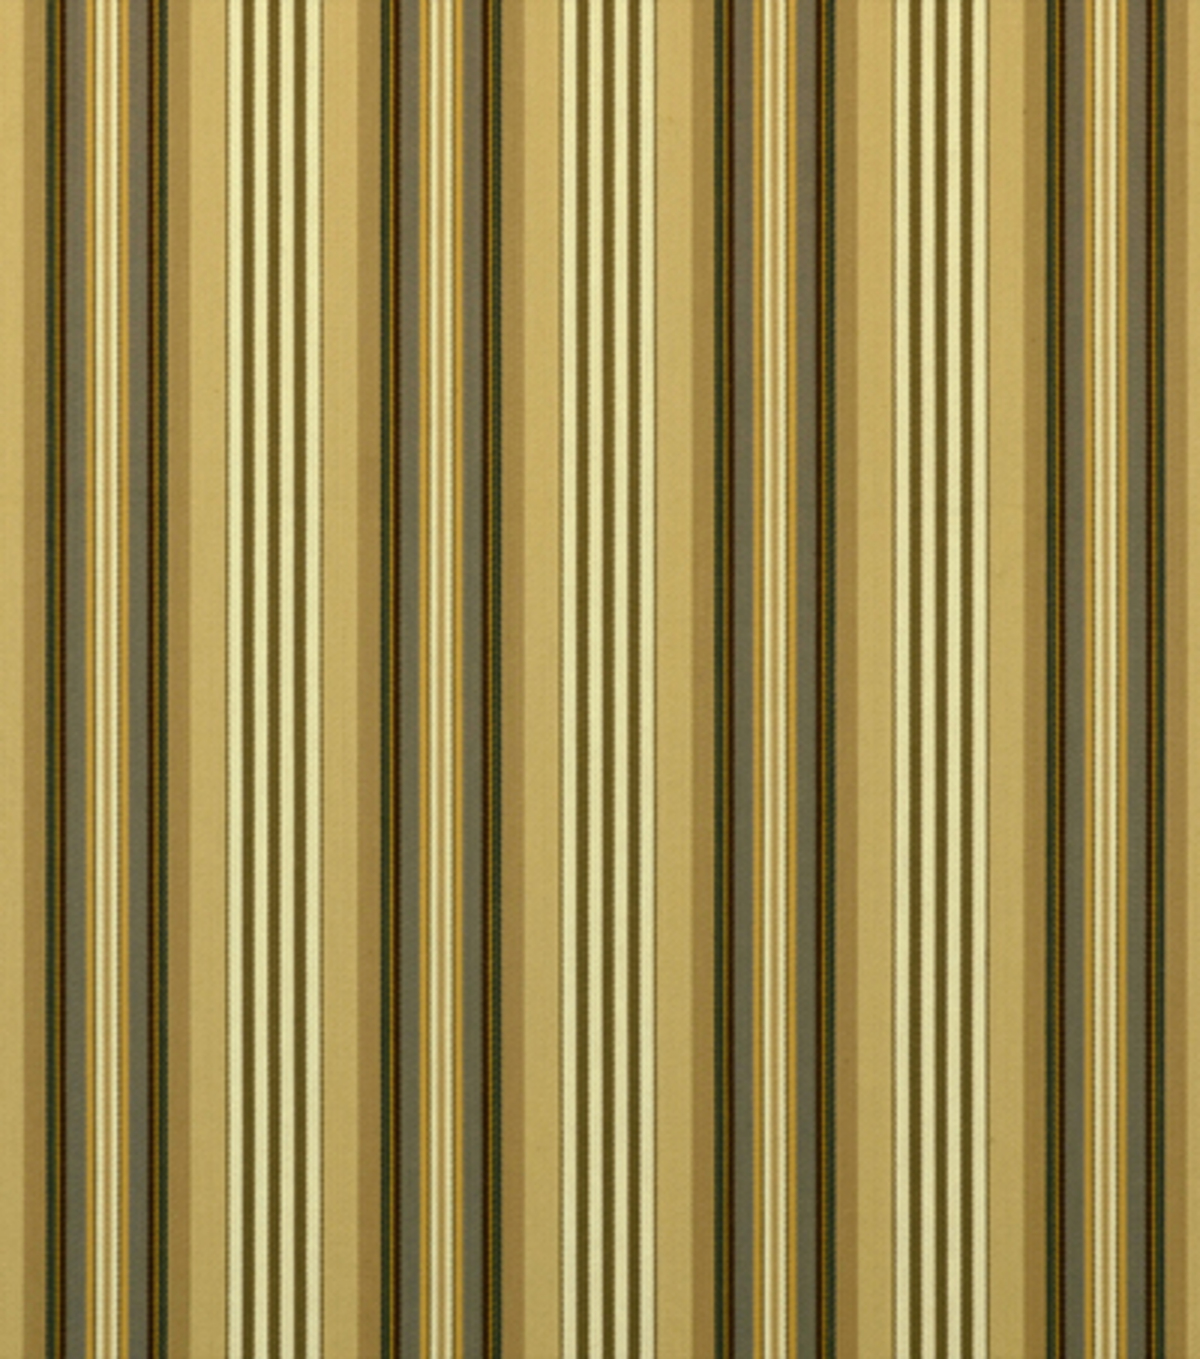 Home Decor 8\u0022x8\u0022 Fabric Swatch-Covington Mesa Stripe 196 Linen